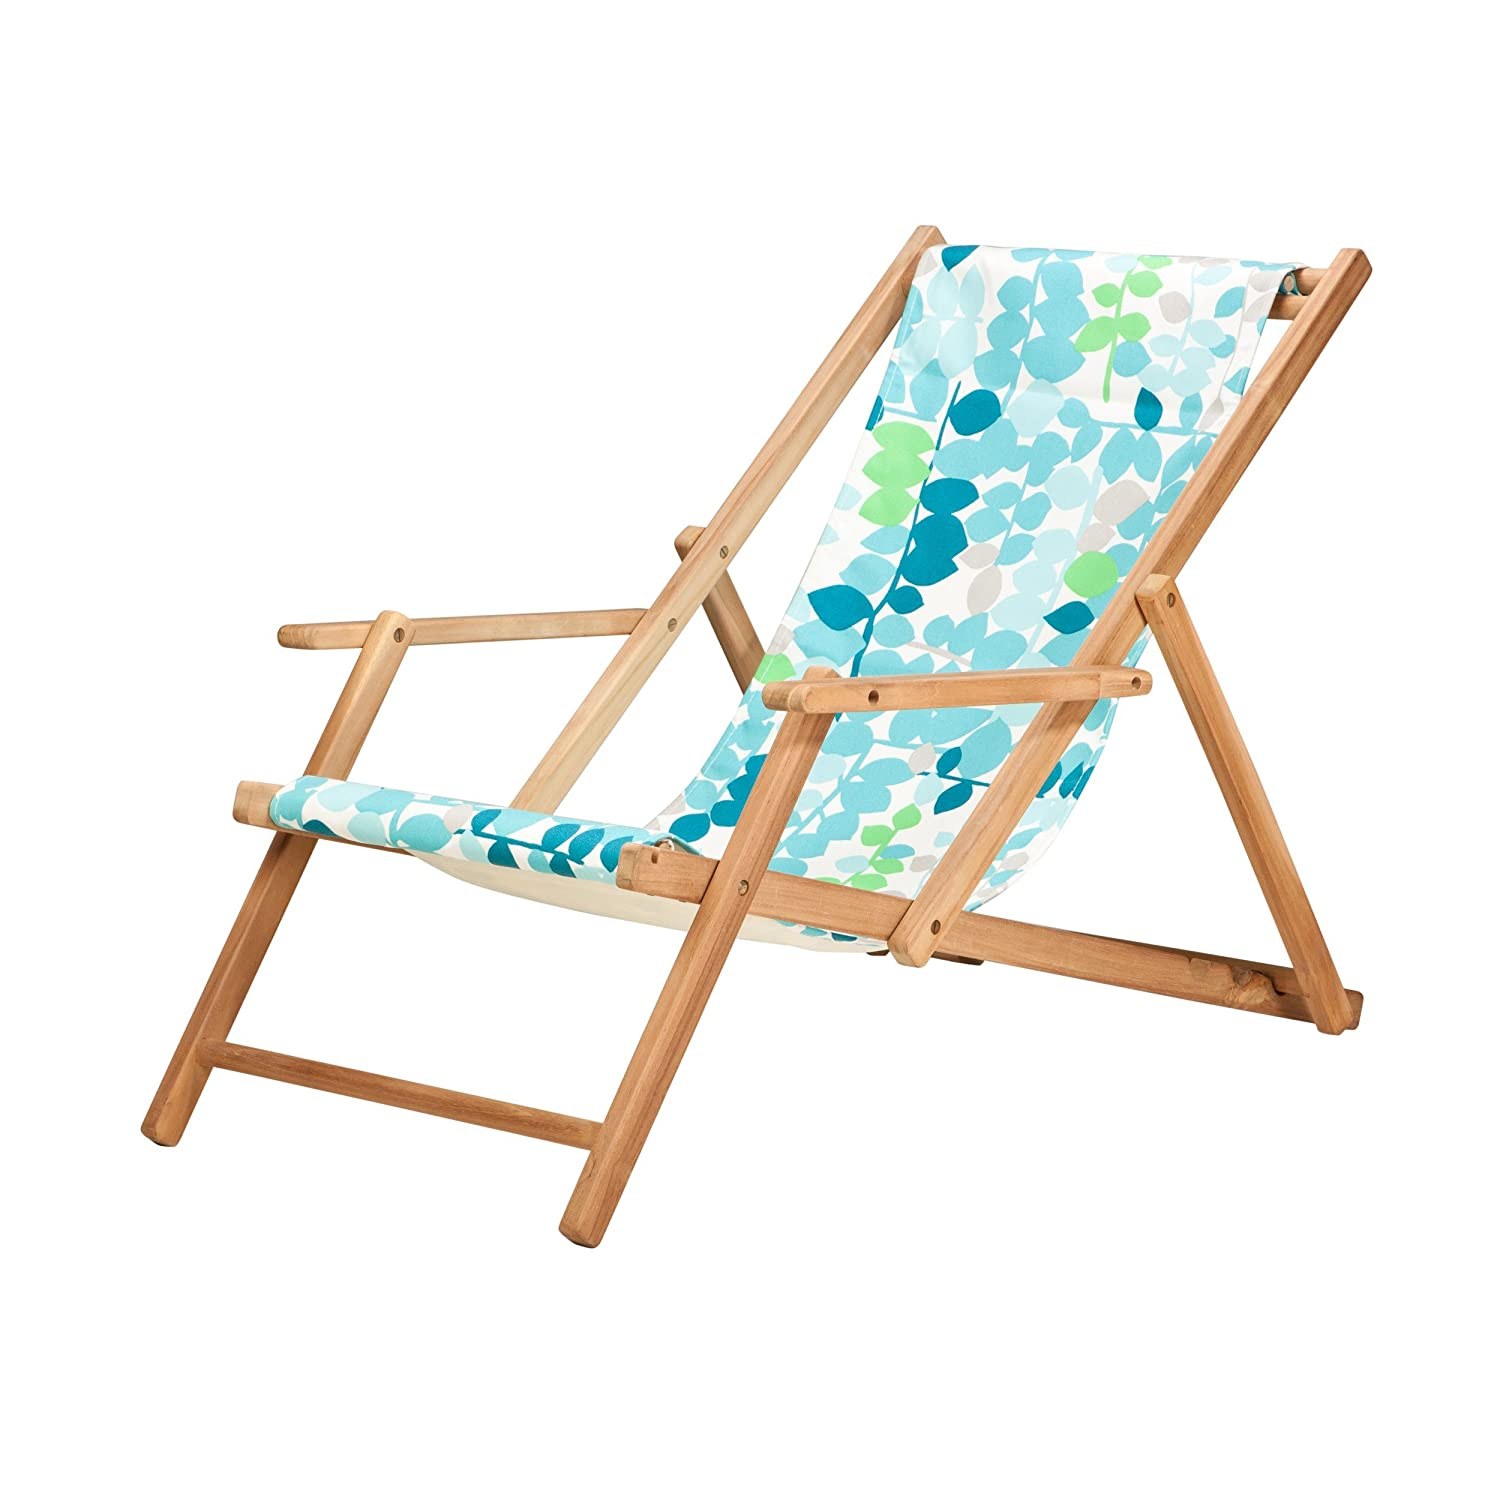 jan kurtz deckchair blume greenwich strandstuhl holz jetzt. Black Bedroom Furniture Sets. Home Design Ideas